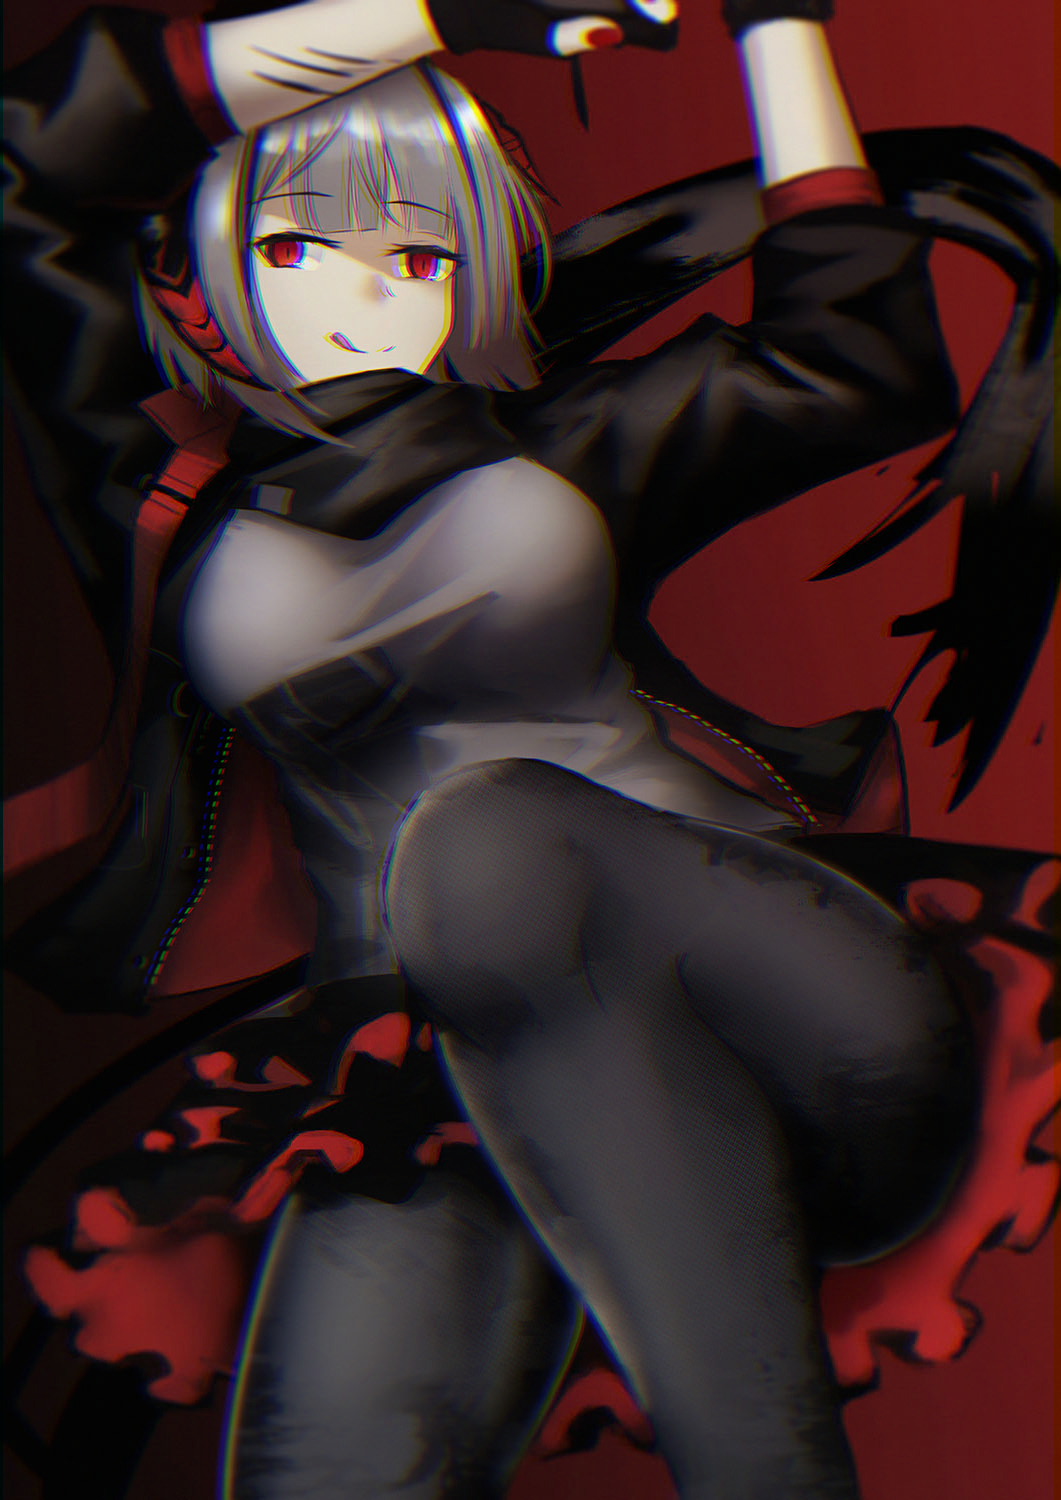 1girl arknights black_gloves black_jacket black_legwear black_scarf breasts closed_mouth eyebrows_visible_through_hair gloves grey_hair grey_shirt highres jacket knee_up lipstick lodbyy looking_at_viewer lying makeup medium_breasts medium_hair nail_polish on_back open_clothes open_jacket pantyhose red_eyes scarf shirt silver_hair simple_background skirt solo tongue tongue_out w_(arknights)